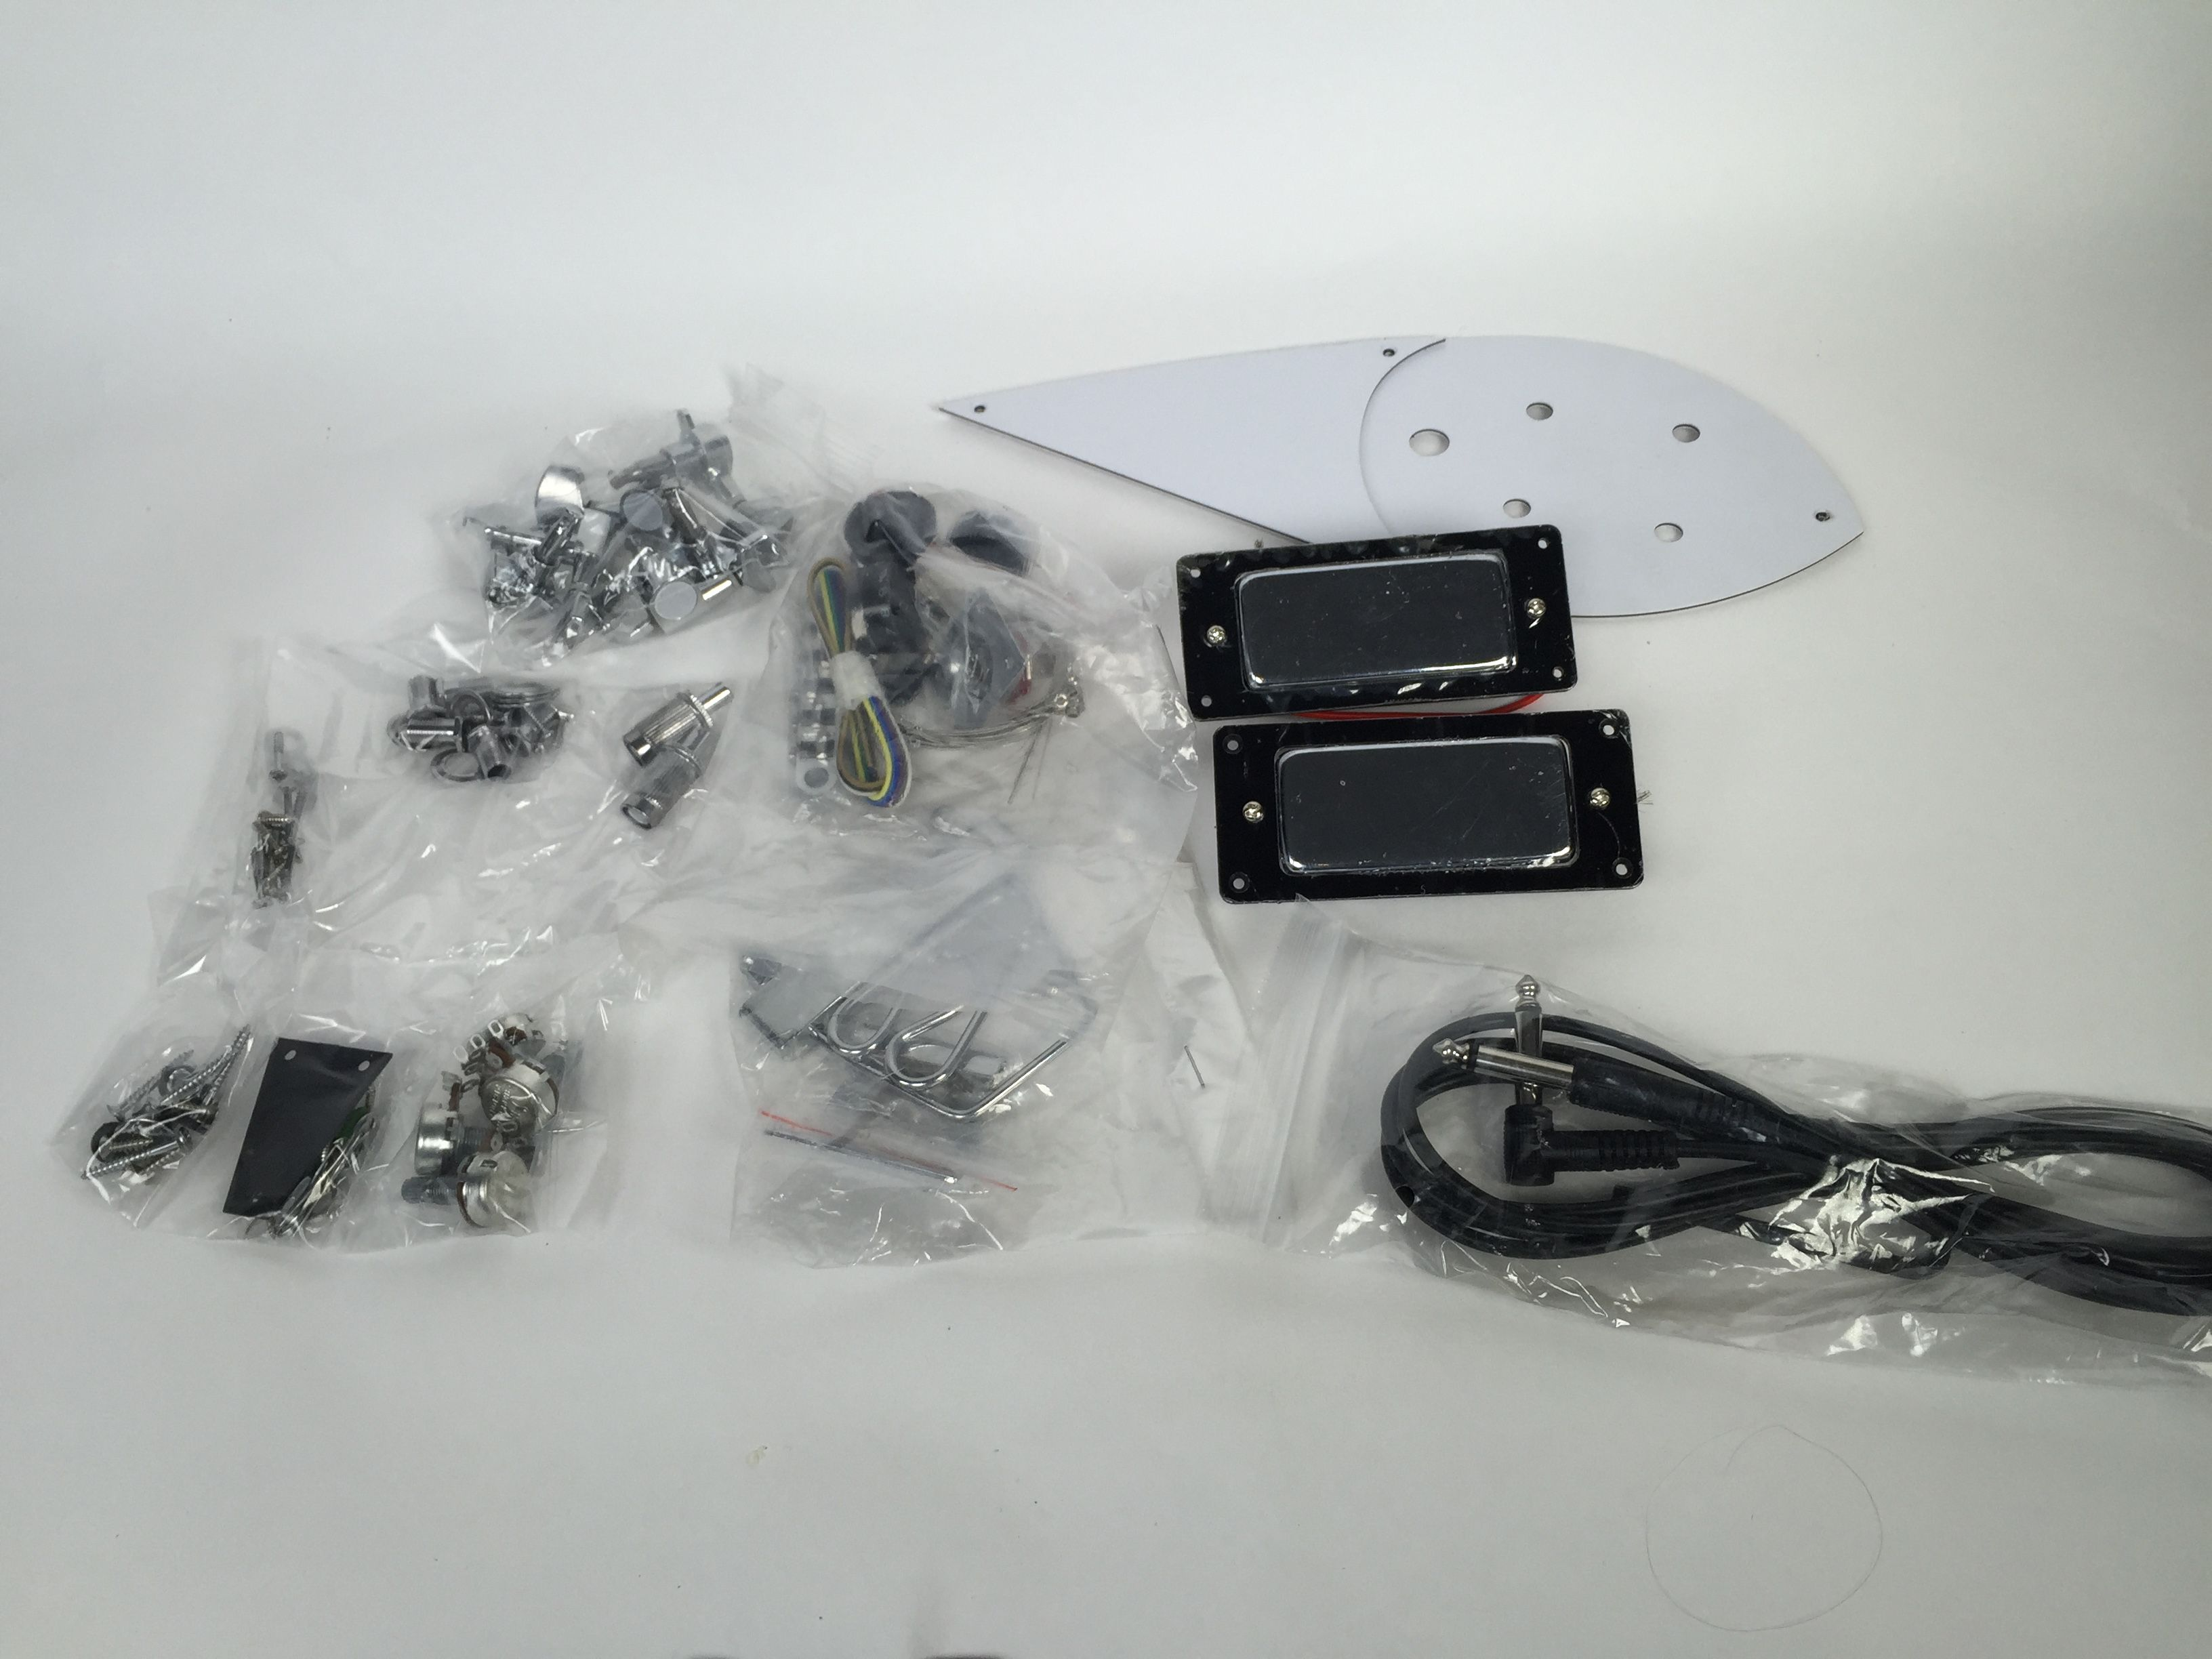 Diy electric guitar kit solid body r style build your own guitar kit diy electric guitar kit solid body r style build your own guitar kit solutioingenieria Images